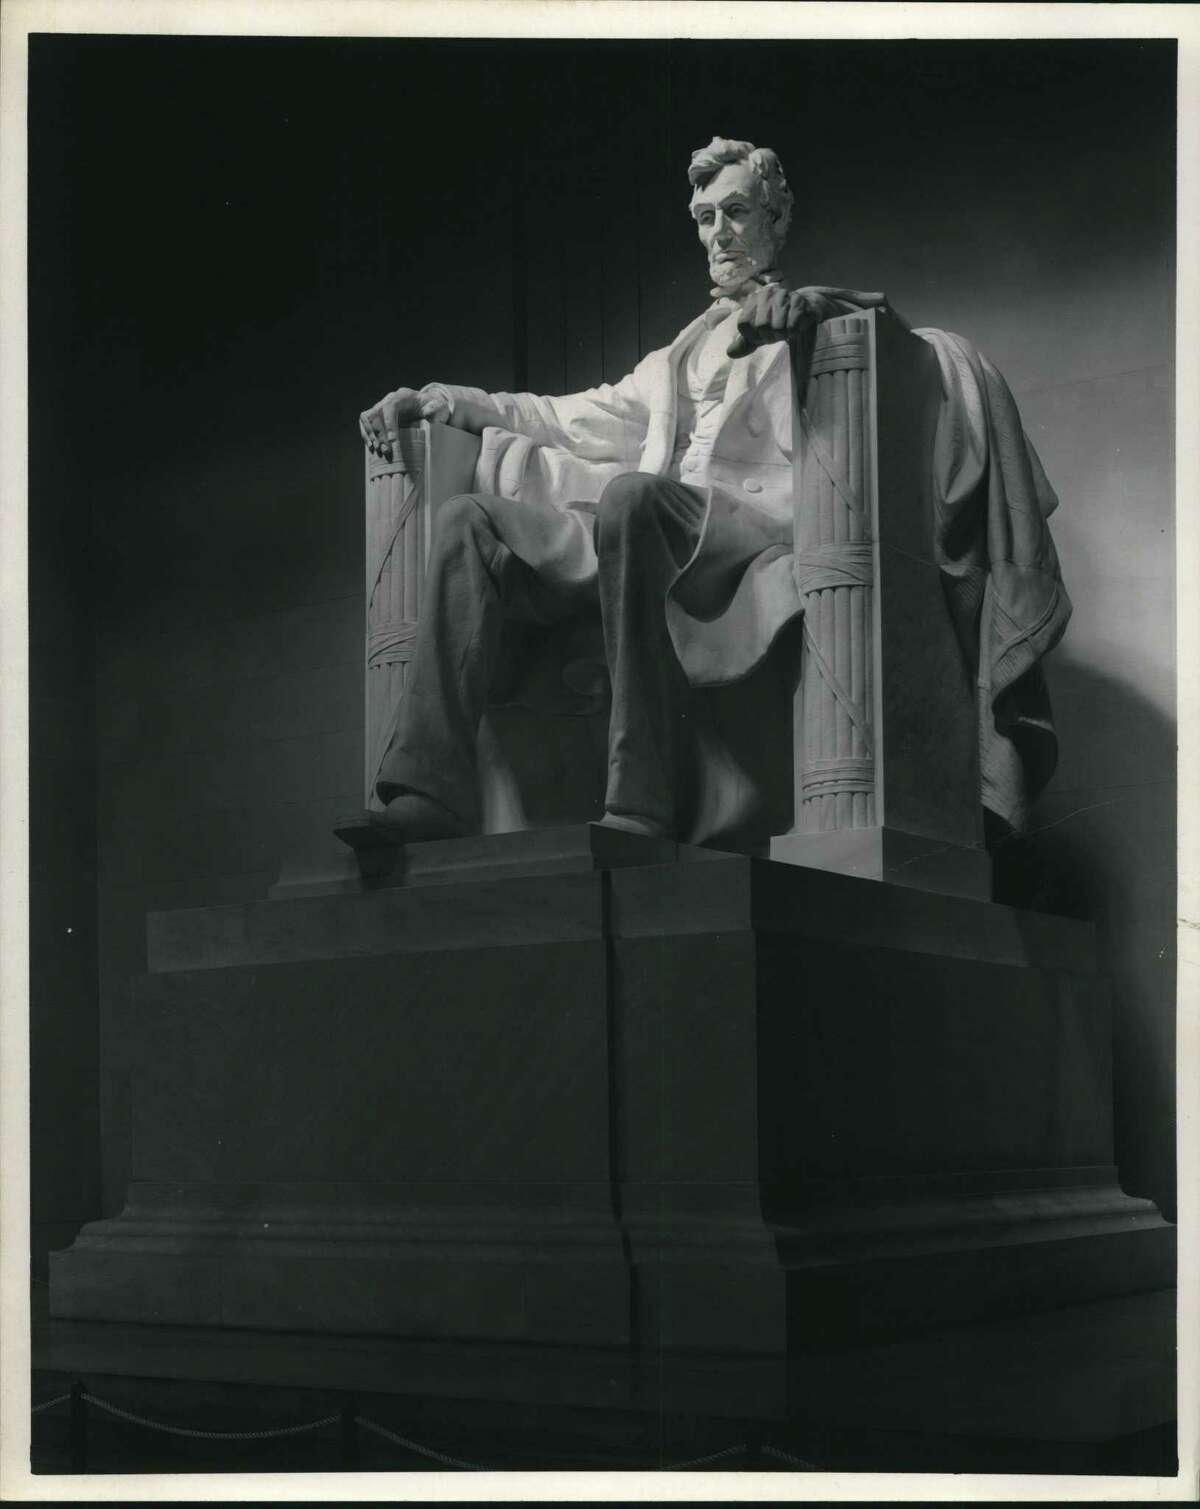 The 16th president of the United States. A cousin of Abraham Lincoln's mother once said that young Abe was hungry for books and read everything he could find. In